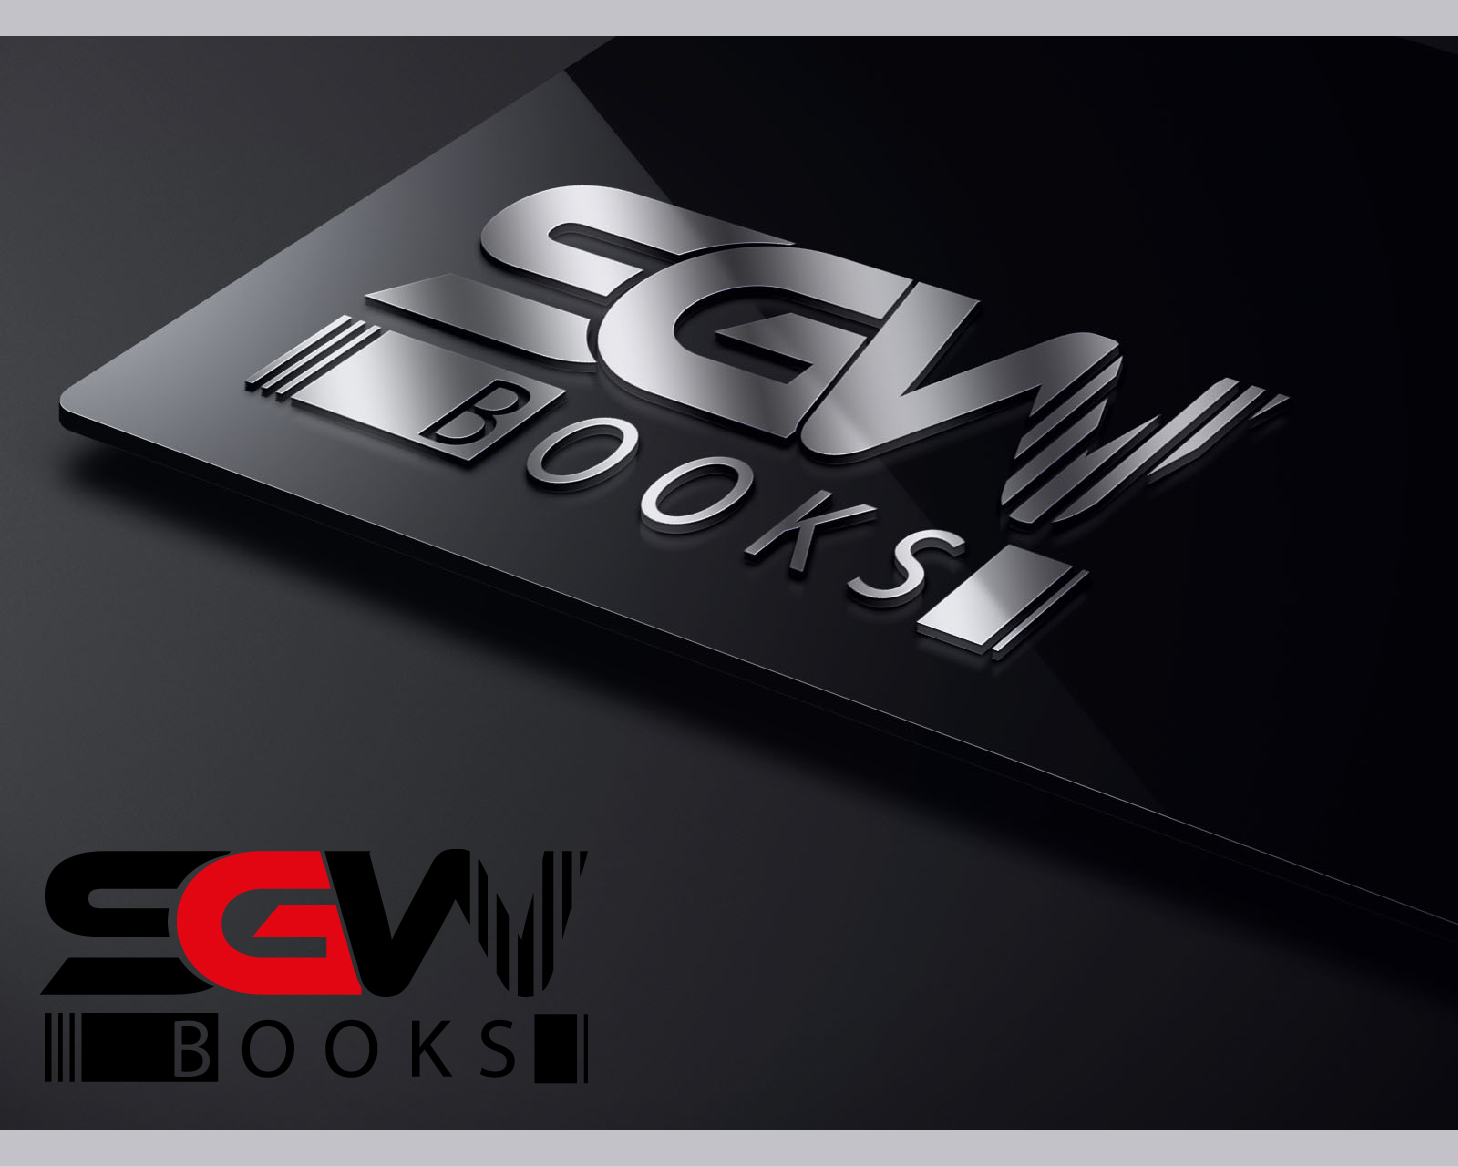 Logo Design by VENTSISLAV KOVACHEV - Entry No. 27 in the Logo Design Contest SGW Books Logo Design.